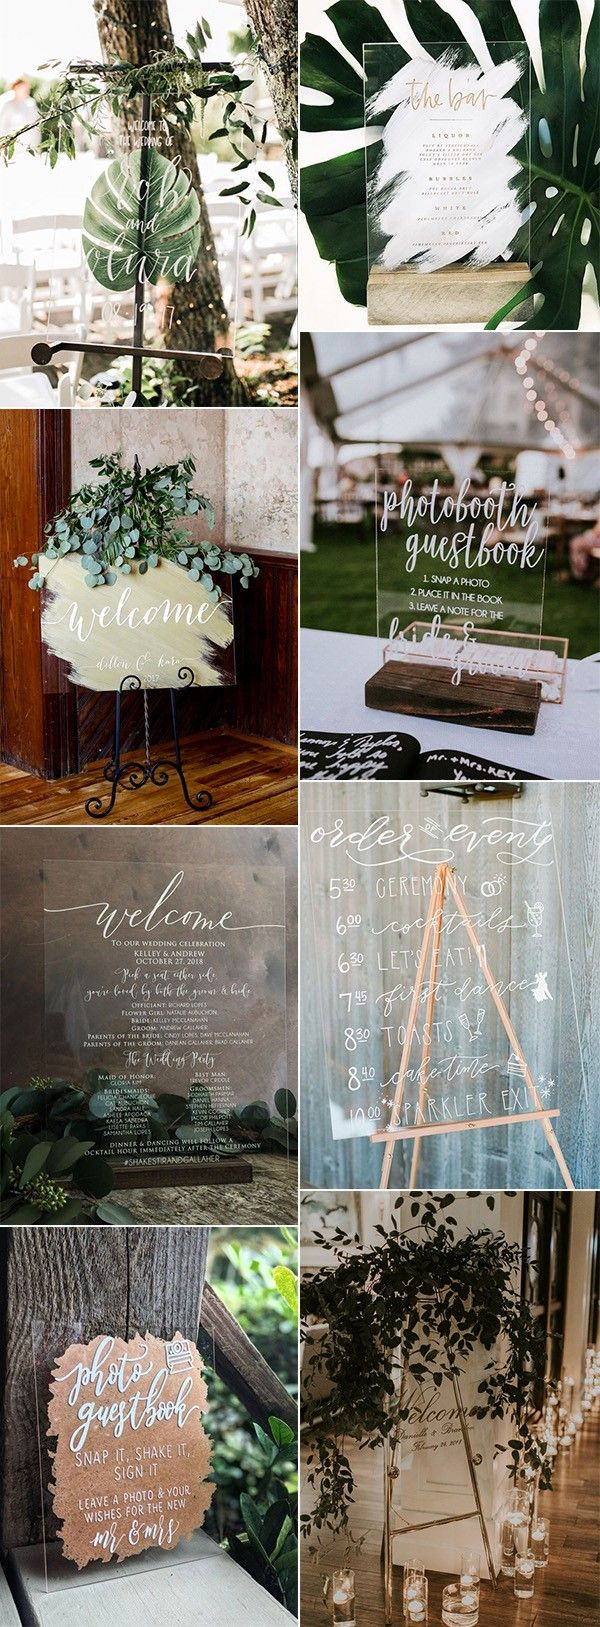 Wedding decorations ideas at home january 2019  Chic Acrylic Wedding Signs to Love for  Trends  Wedding